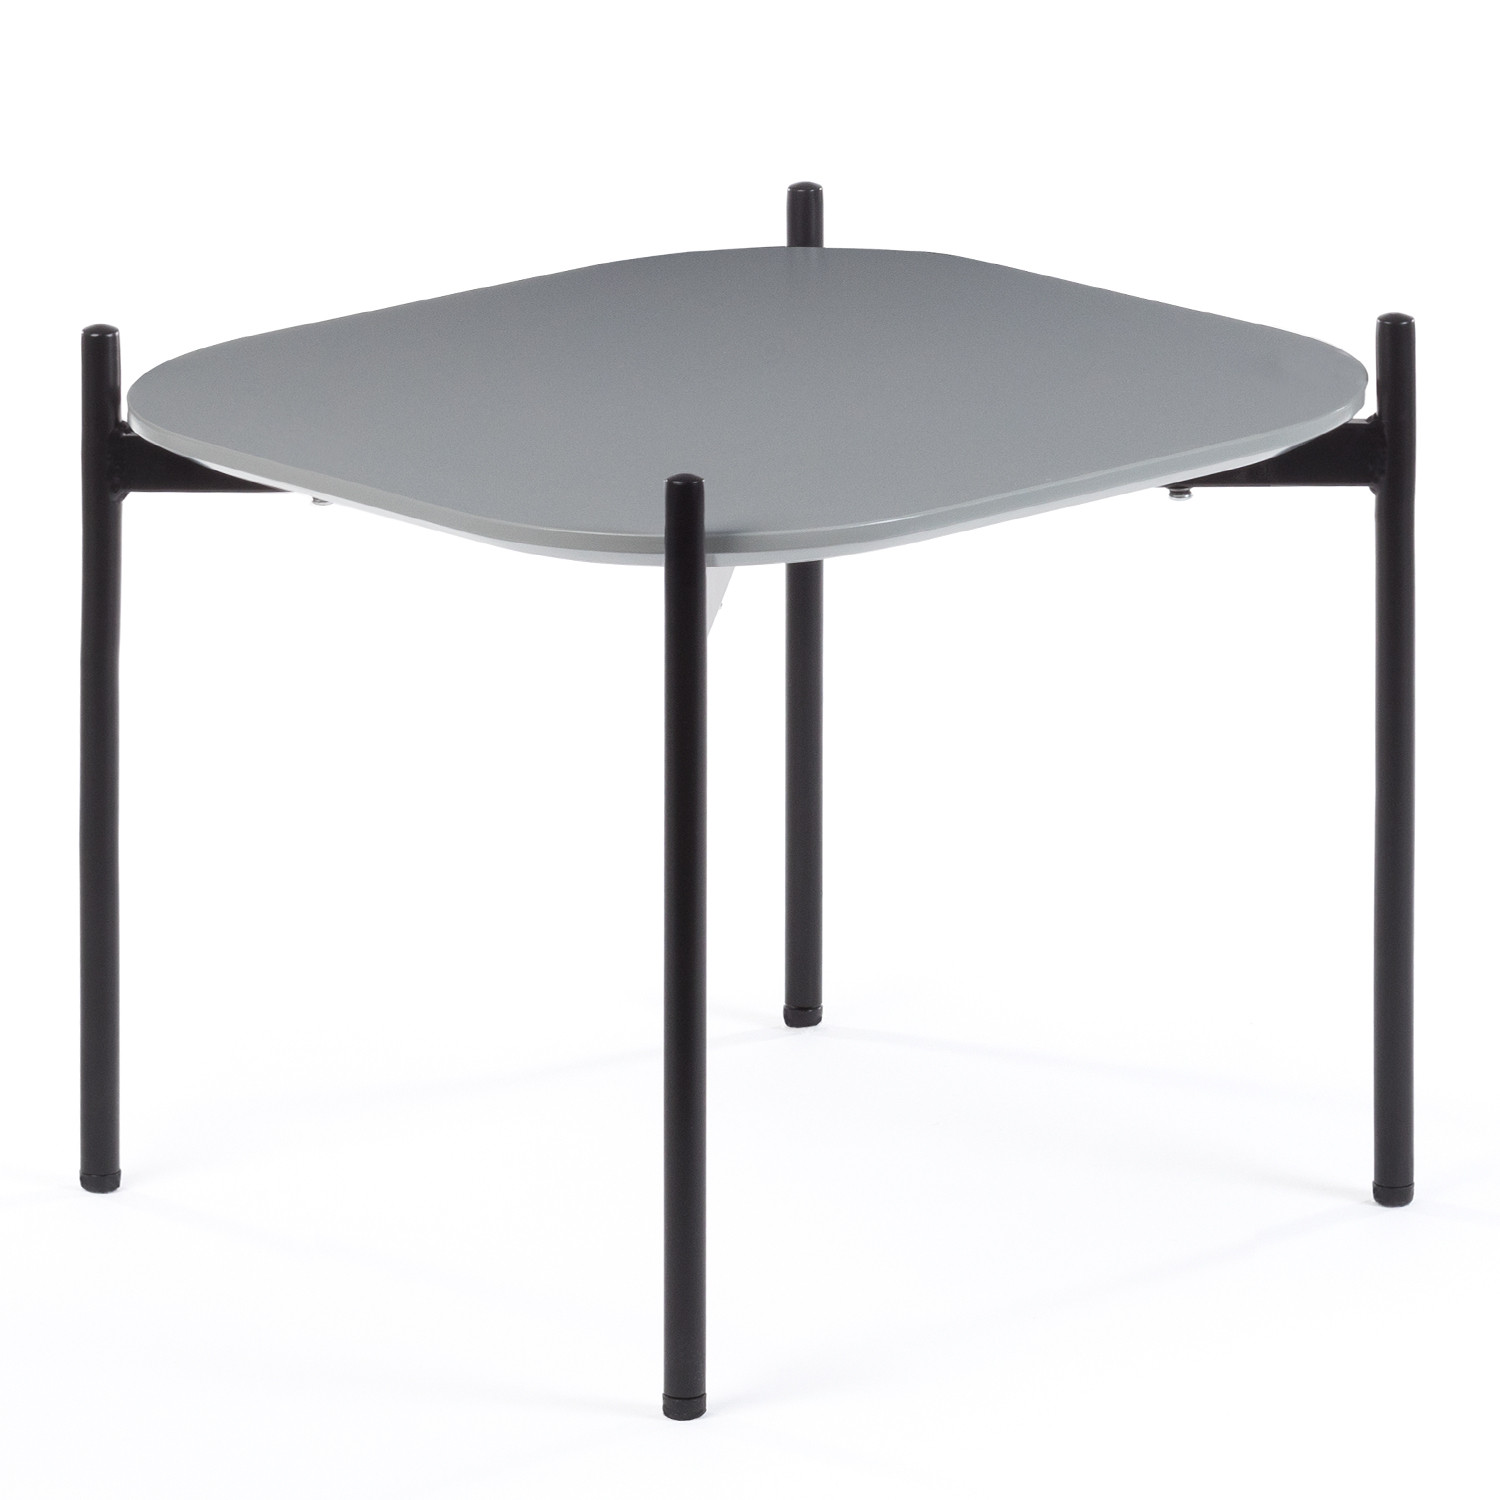 Andy Table ( 50 x 50 cm), gallery image 1